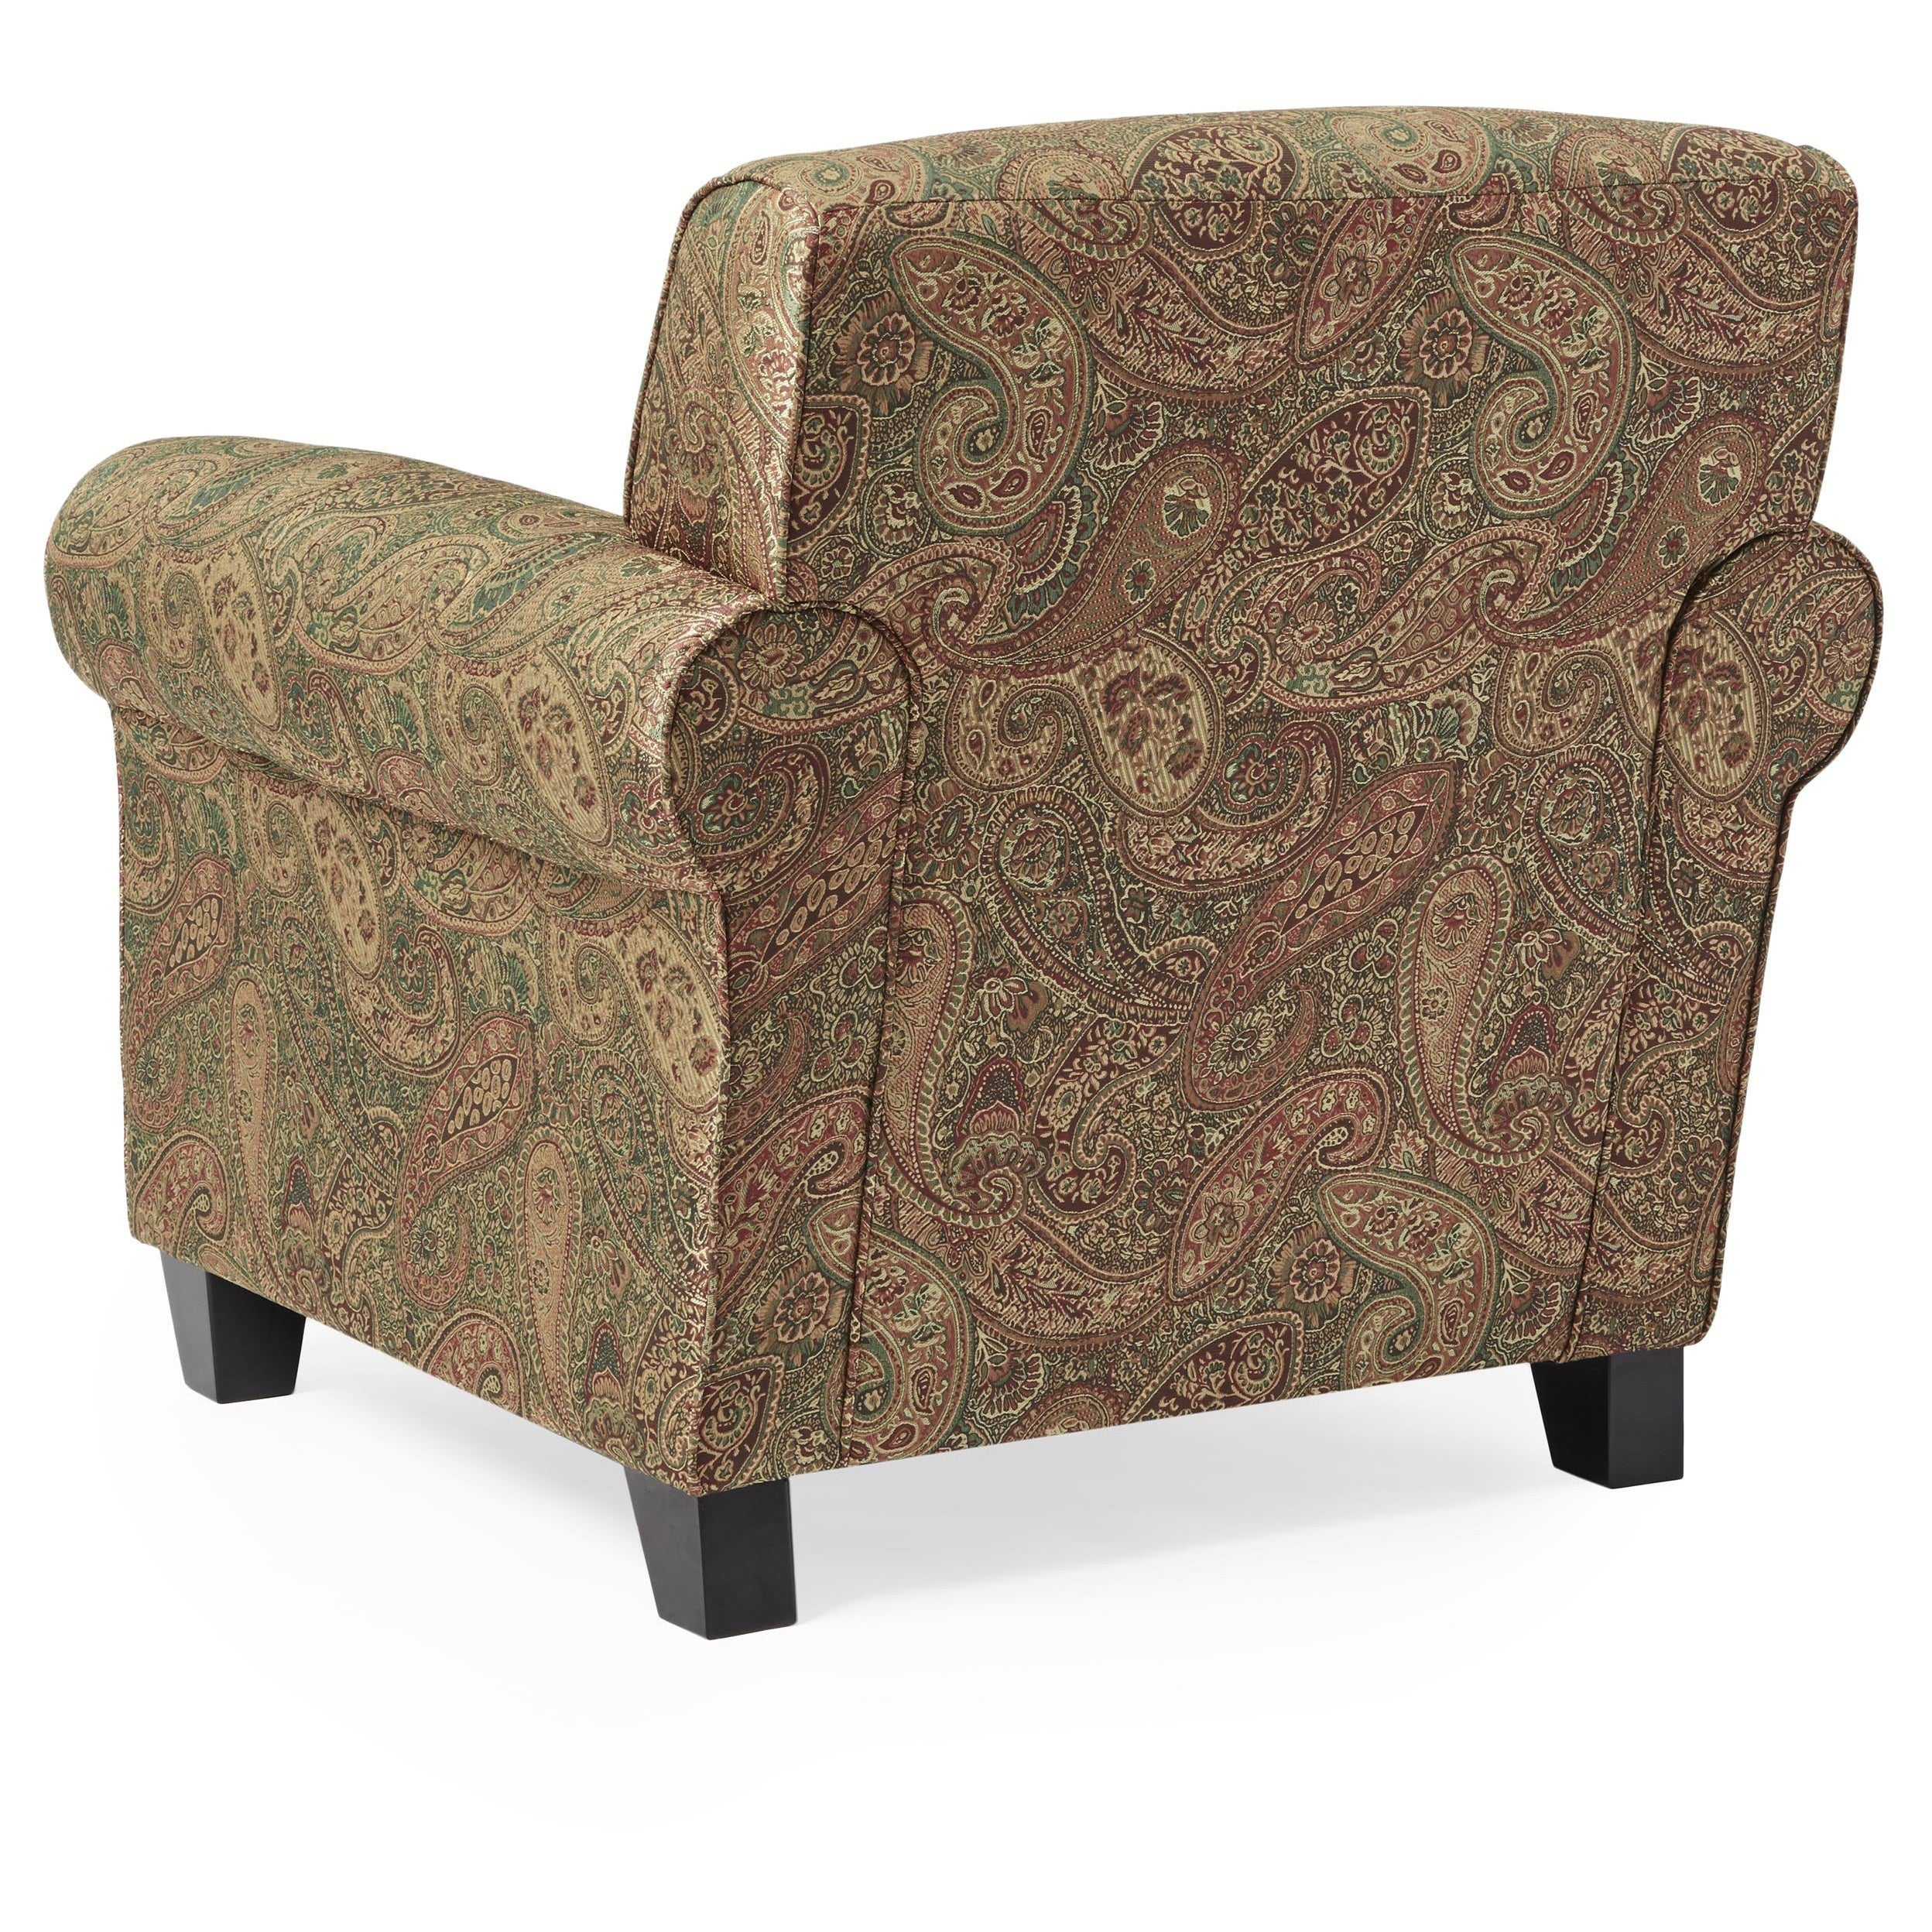 Delightful Portfolio Mira 8 Way Hand Tied Paisley Arm Chair And Ottoman   Free  Shipping Today   Overstock   11440034